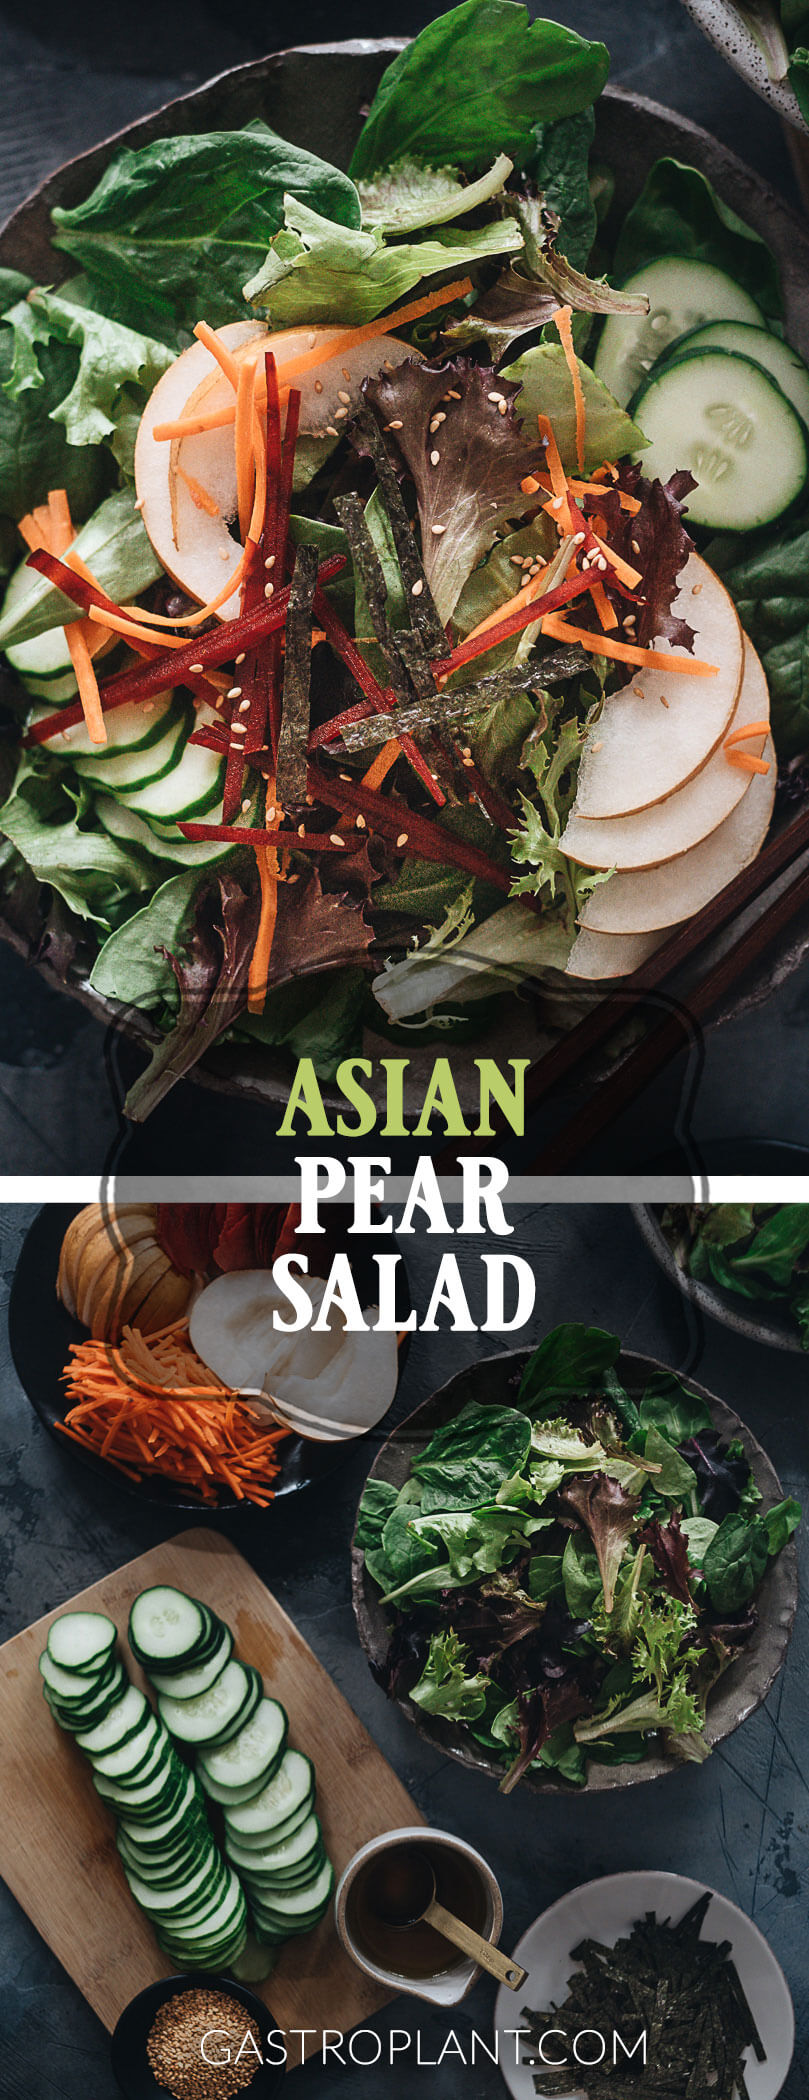 Refreshing and quick Asian pear salad collage